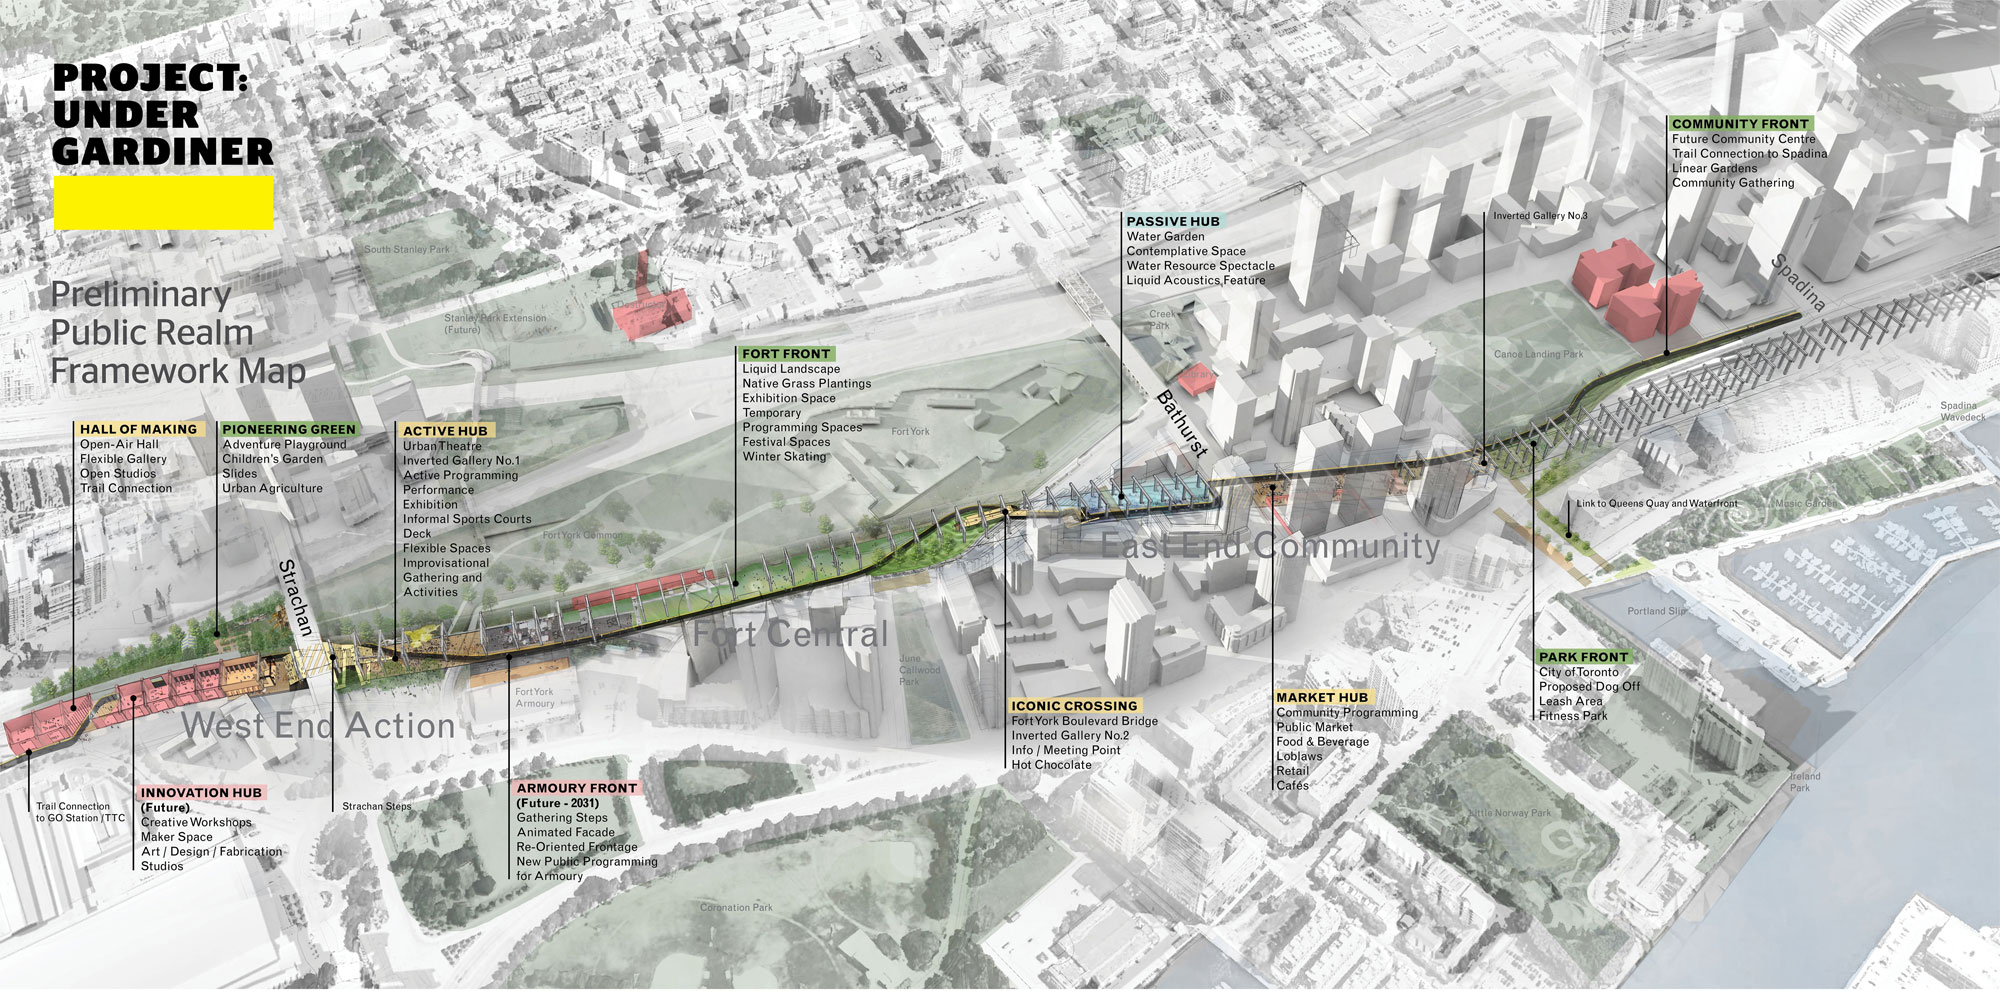 """The preliminary design framework for """"Project: Under Gardiner"""" outlines a new public space that knits together some of Toronto's most dense neighbourhoods and connects a number of new or planned amenities. Photo by Public Work via Waterfront Toronto."""